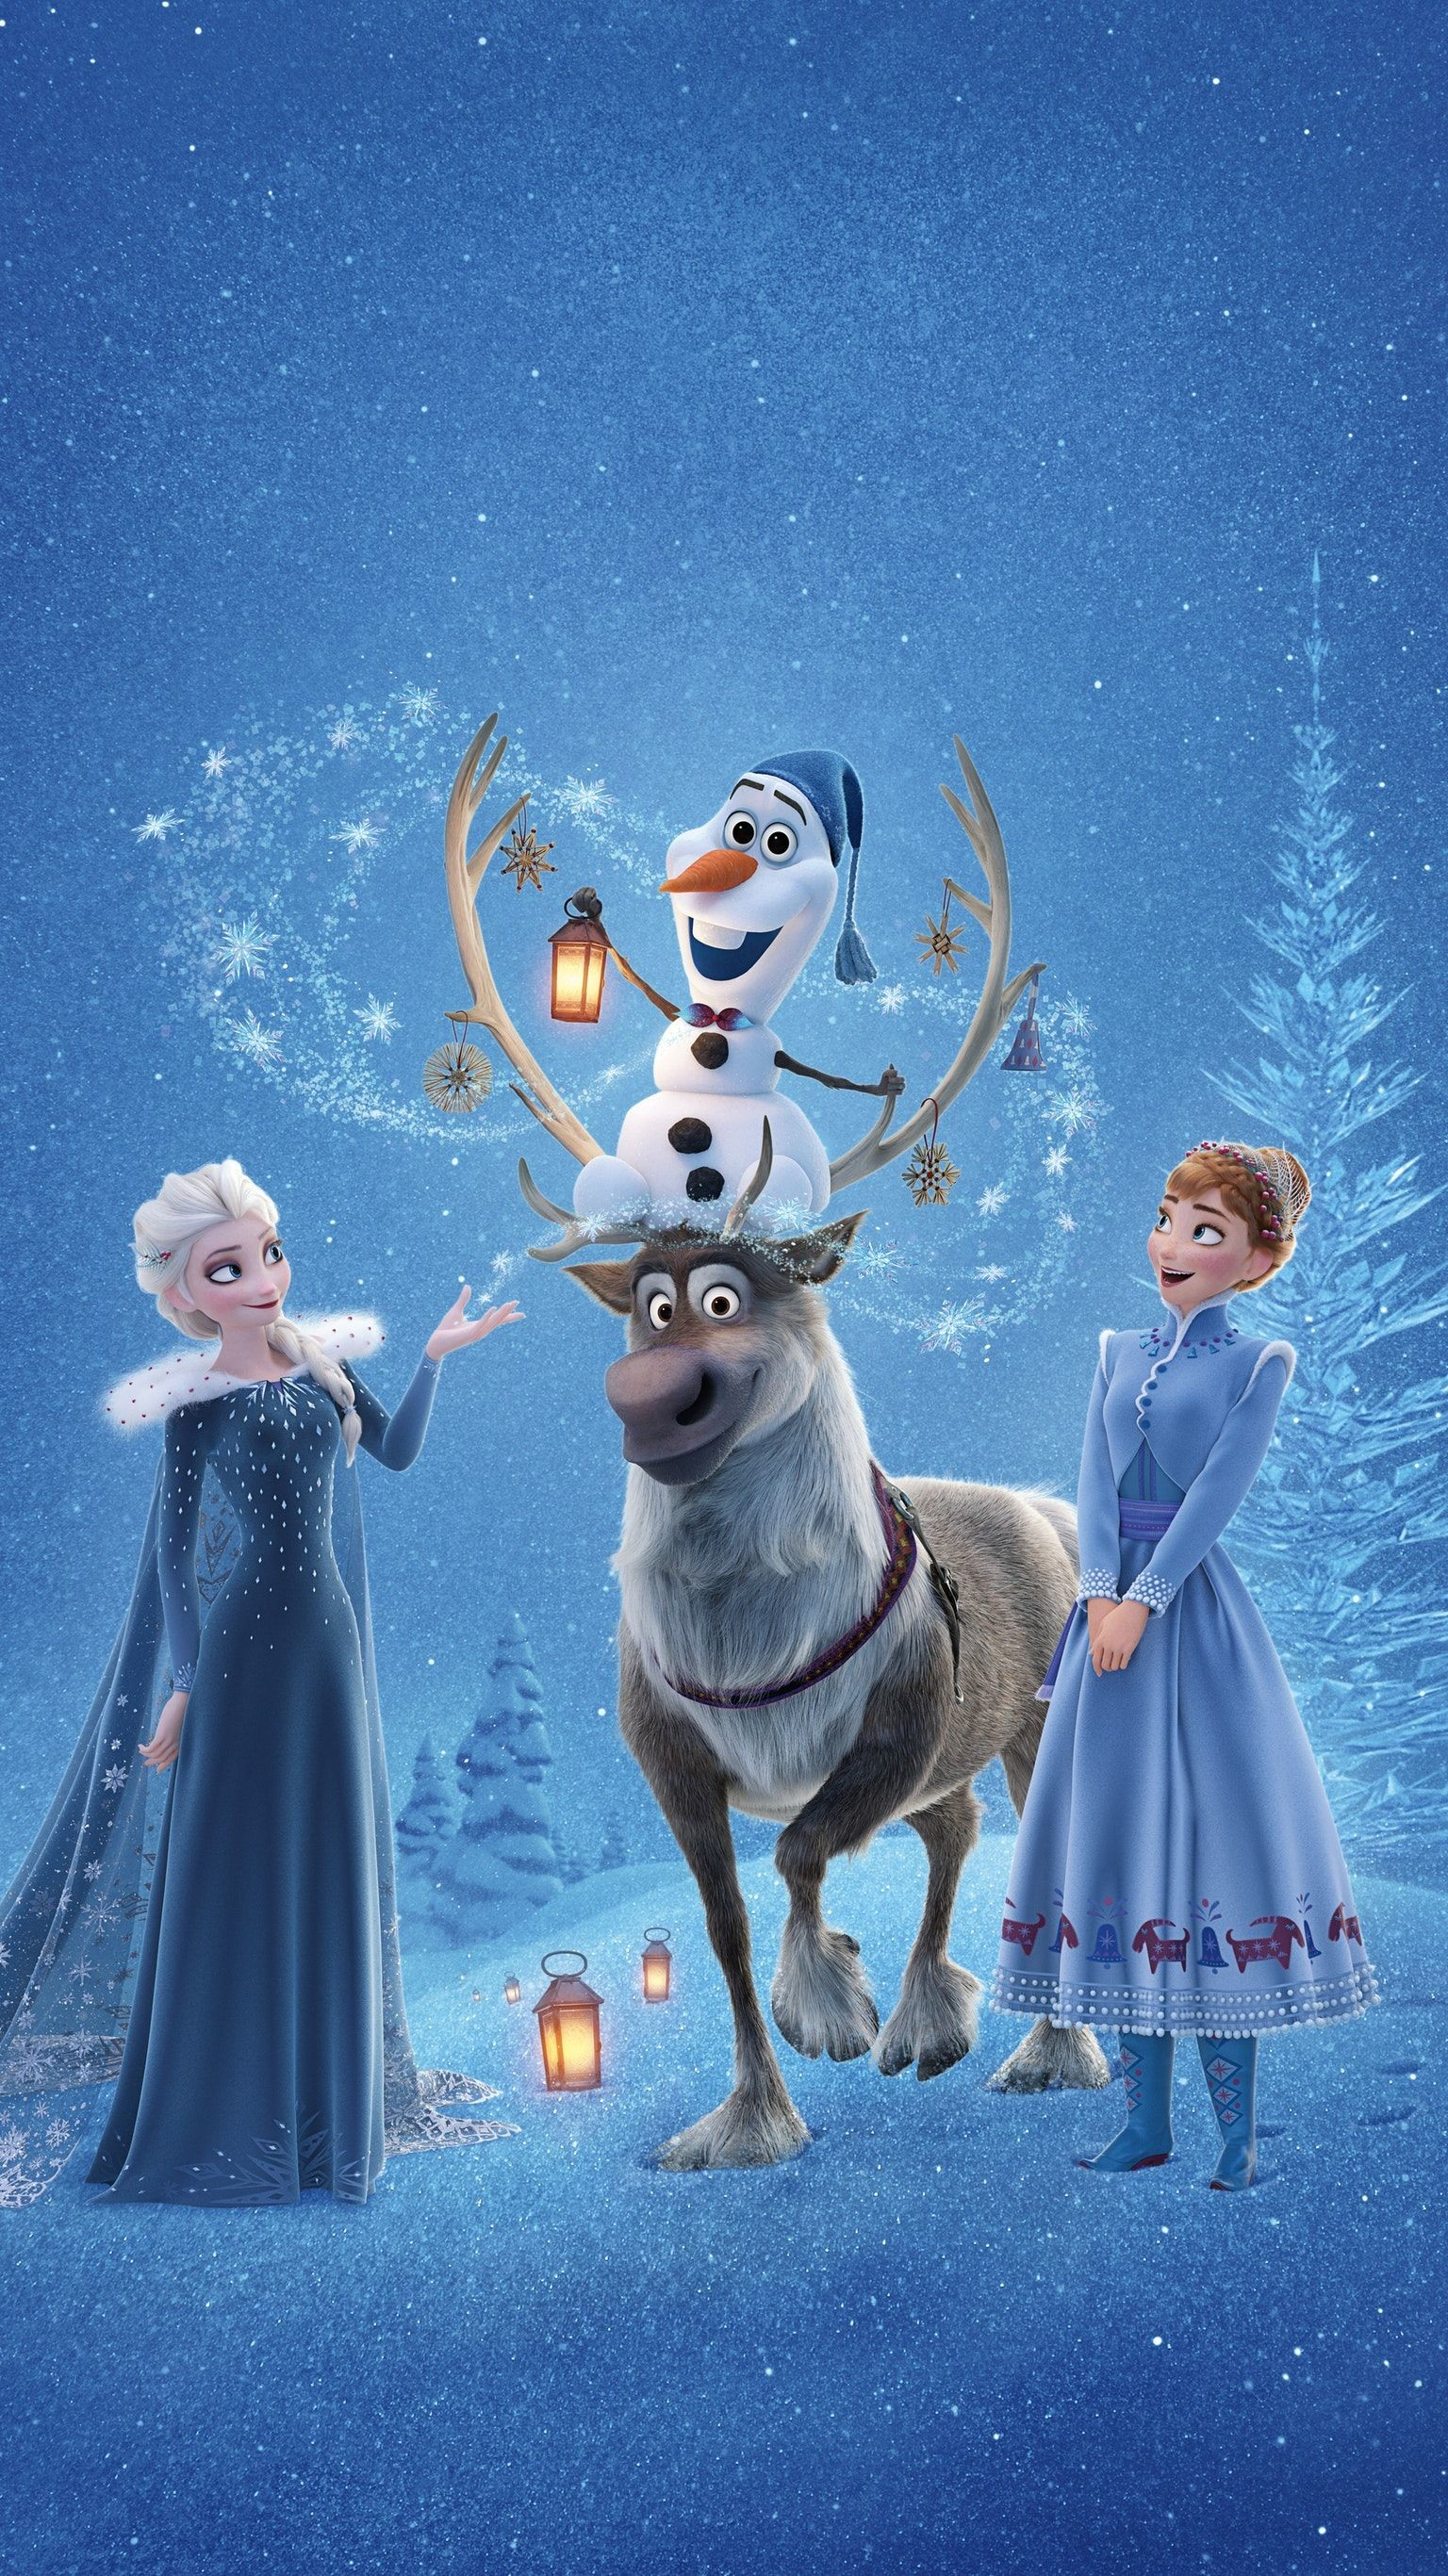 Res: 1536x2733, Olaf's Frozen Adventure (2017) Phone Wallpaper | Disney s, Disney wallpaper  and Disney dreams